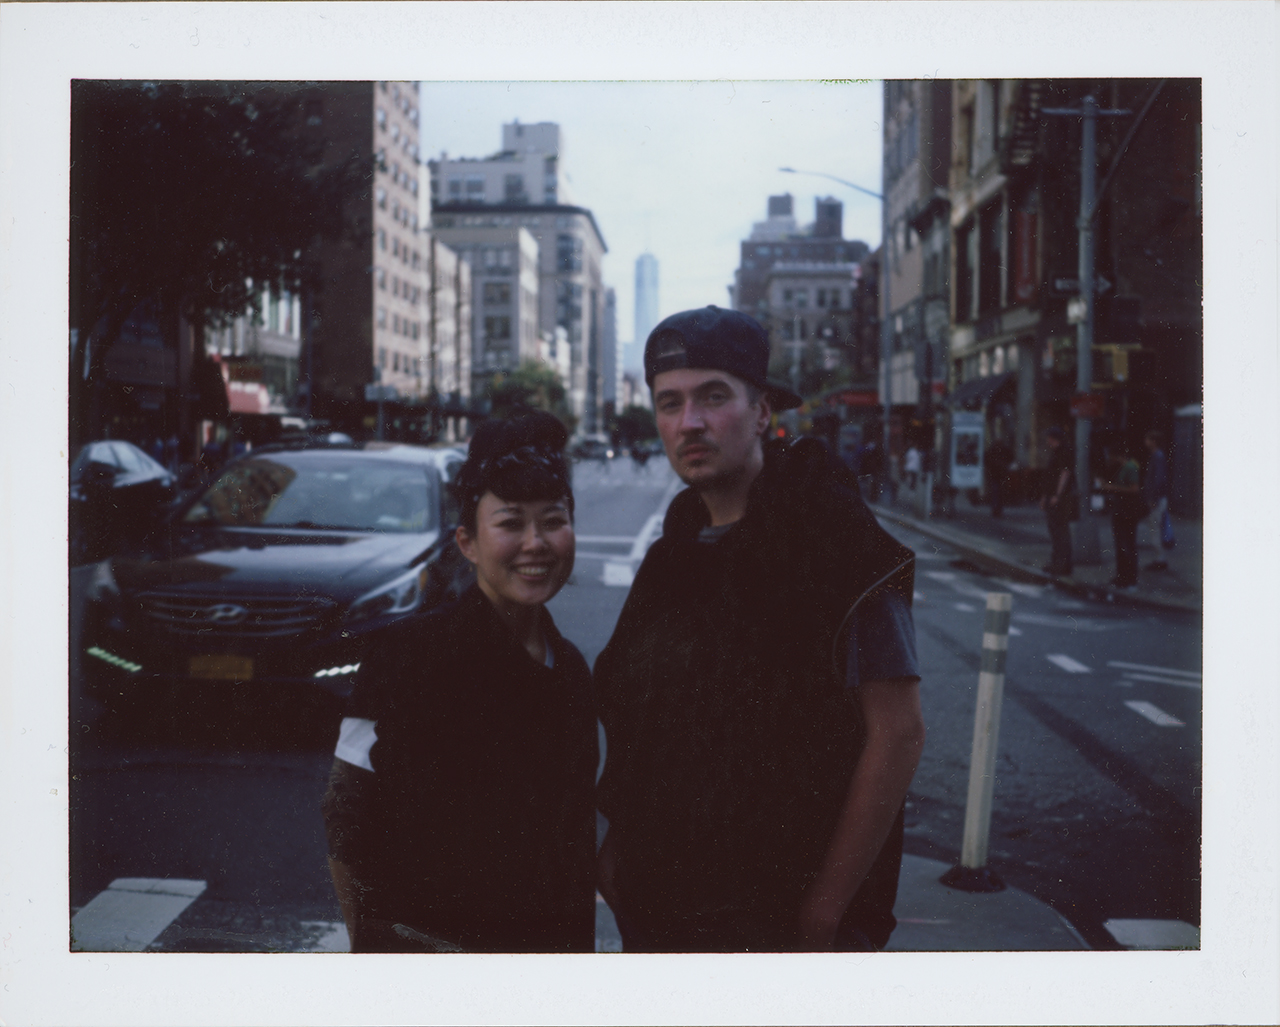 Yoko and Jayson on FP-100c